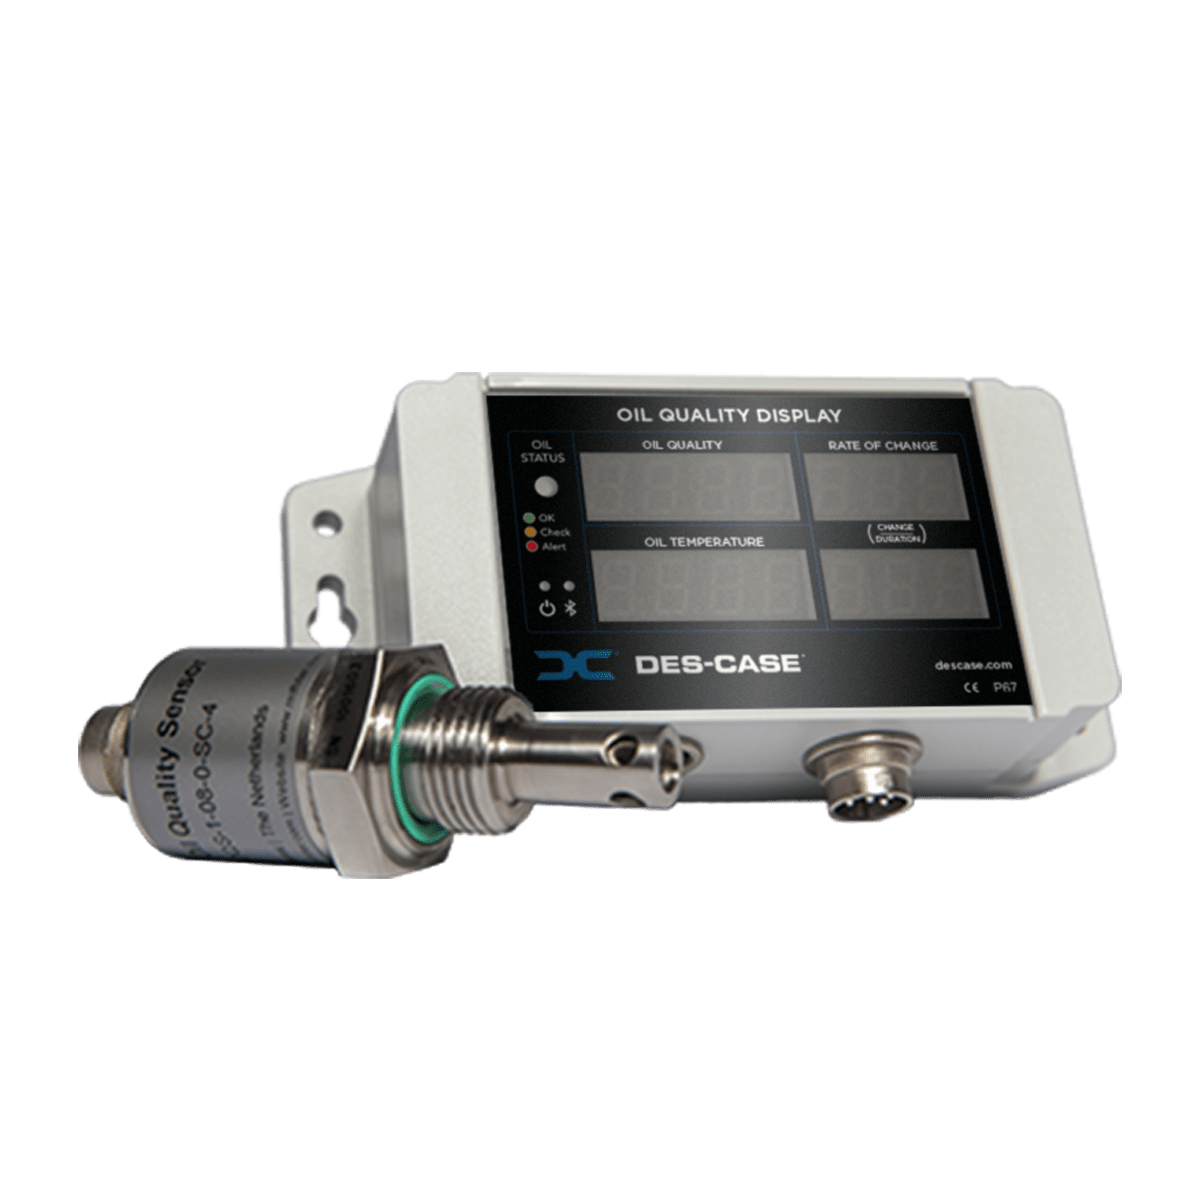 Des-Case Condition Monitoring Oil Quality Display and Sensor 3.2